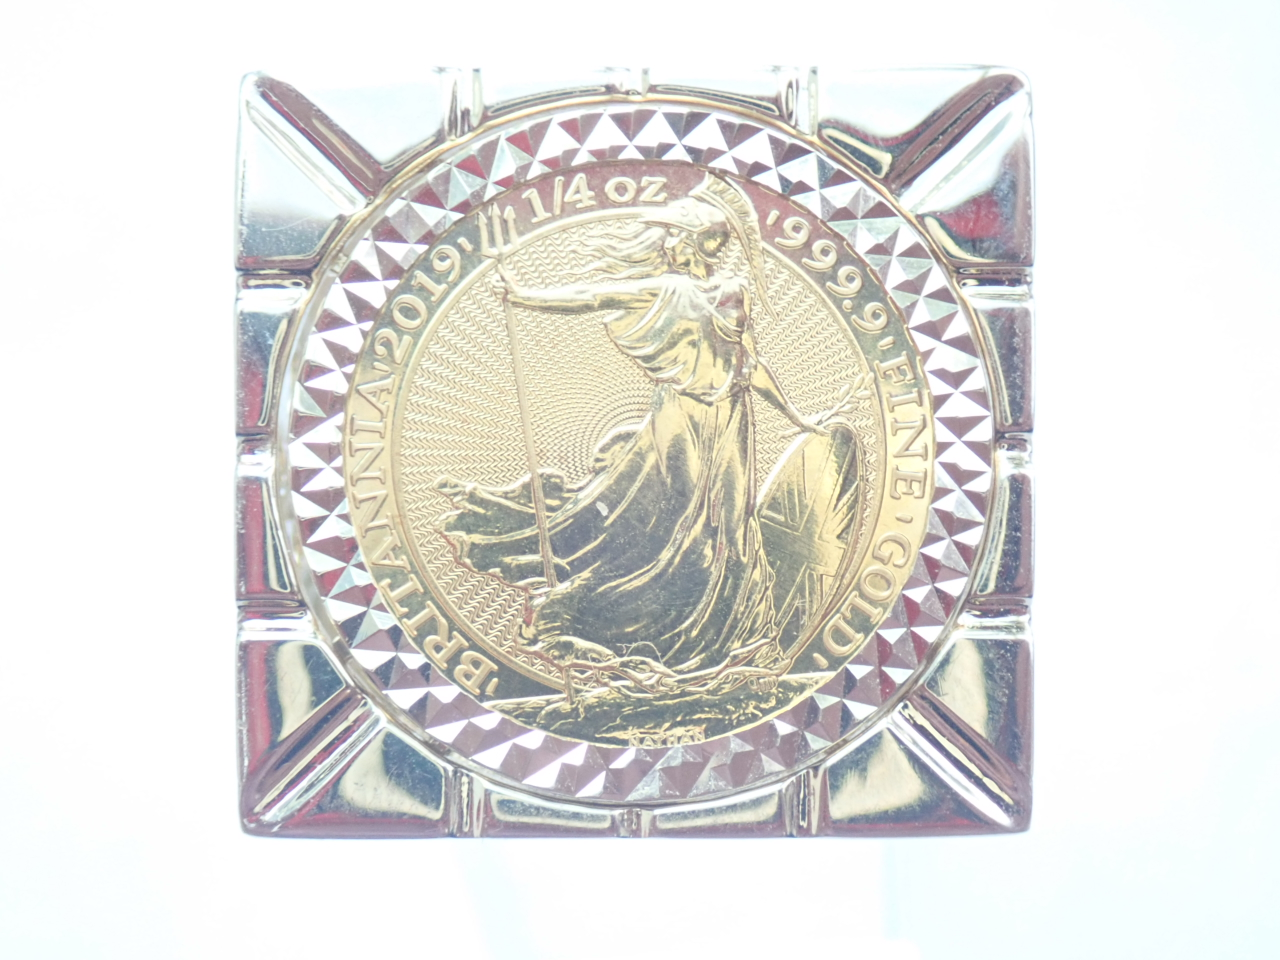 2019 1/4 Oz Britannia & Mount 9ct Gold Clubs Square Top Ring Size Y